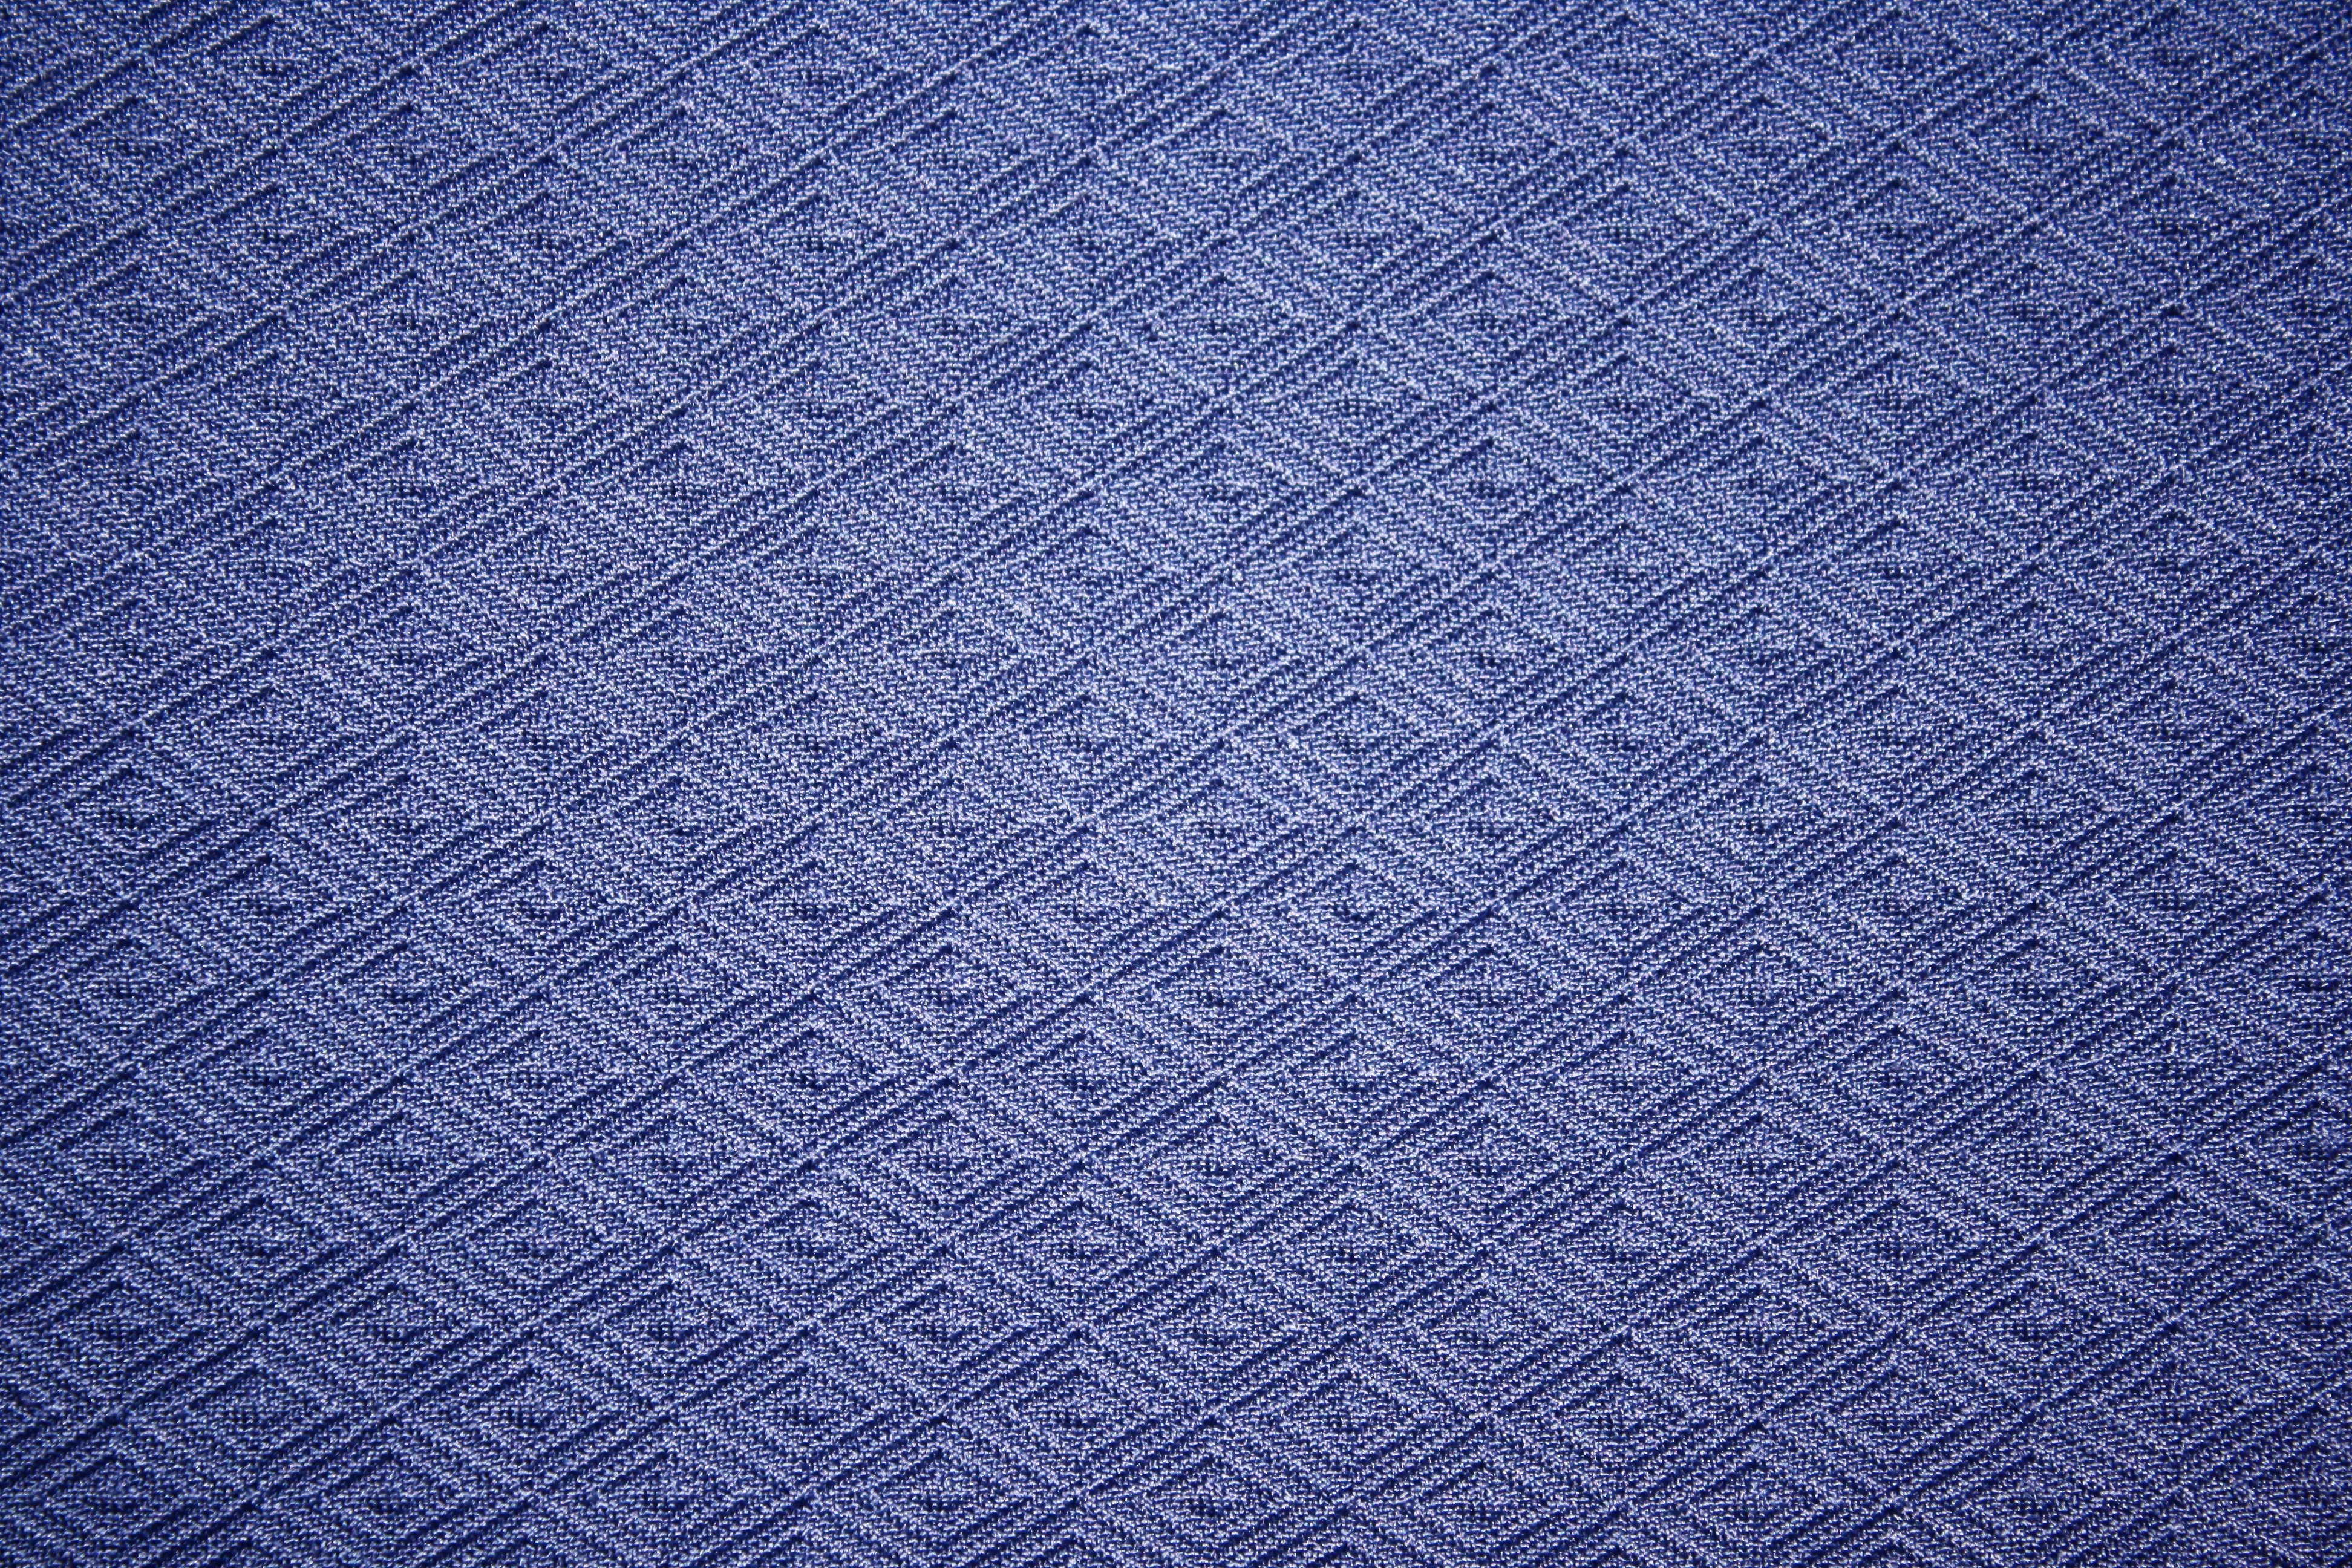 Blue Knit Fabric with Diamond Pattern Texture Picture ...